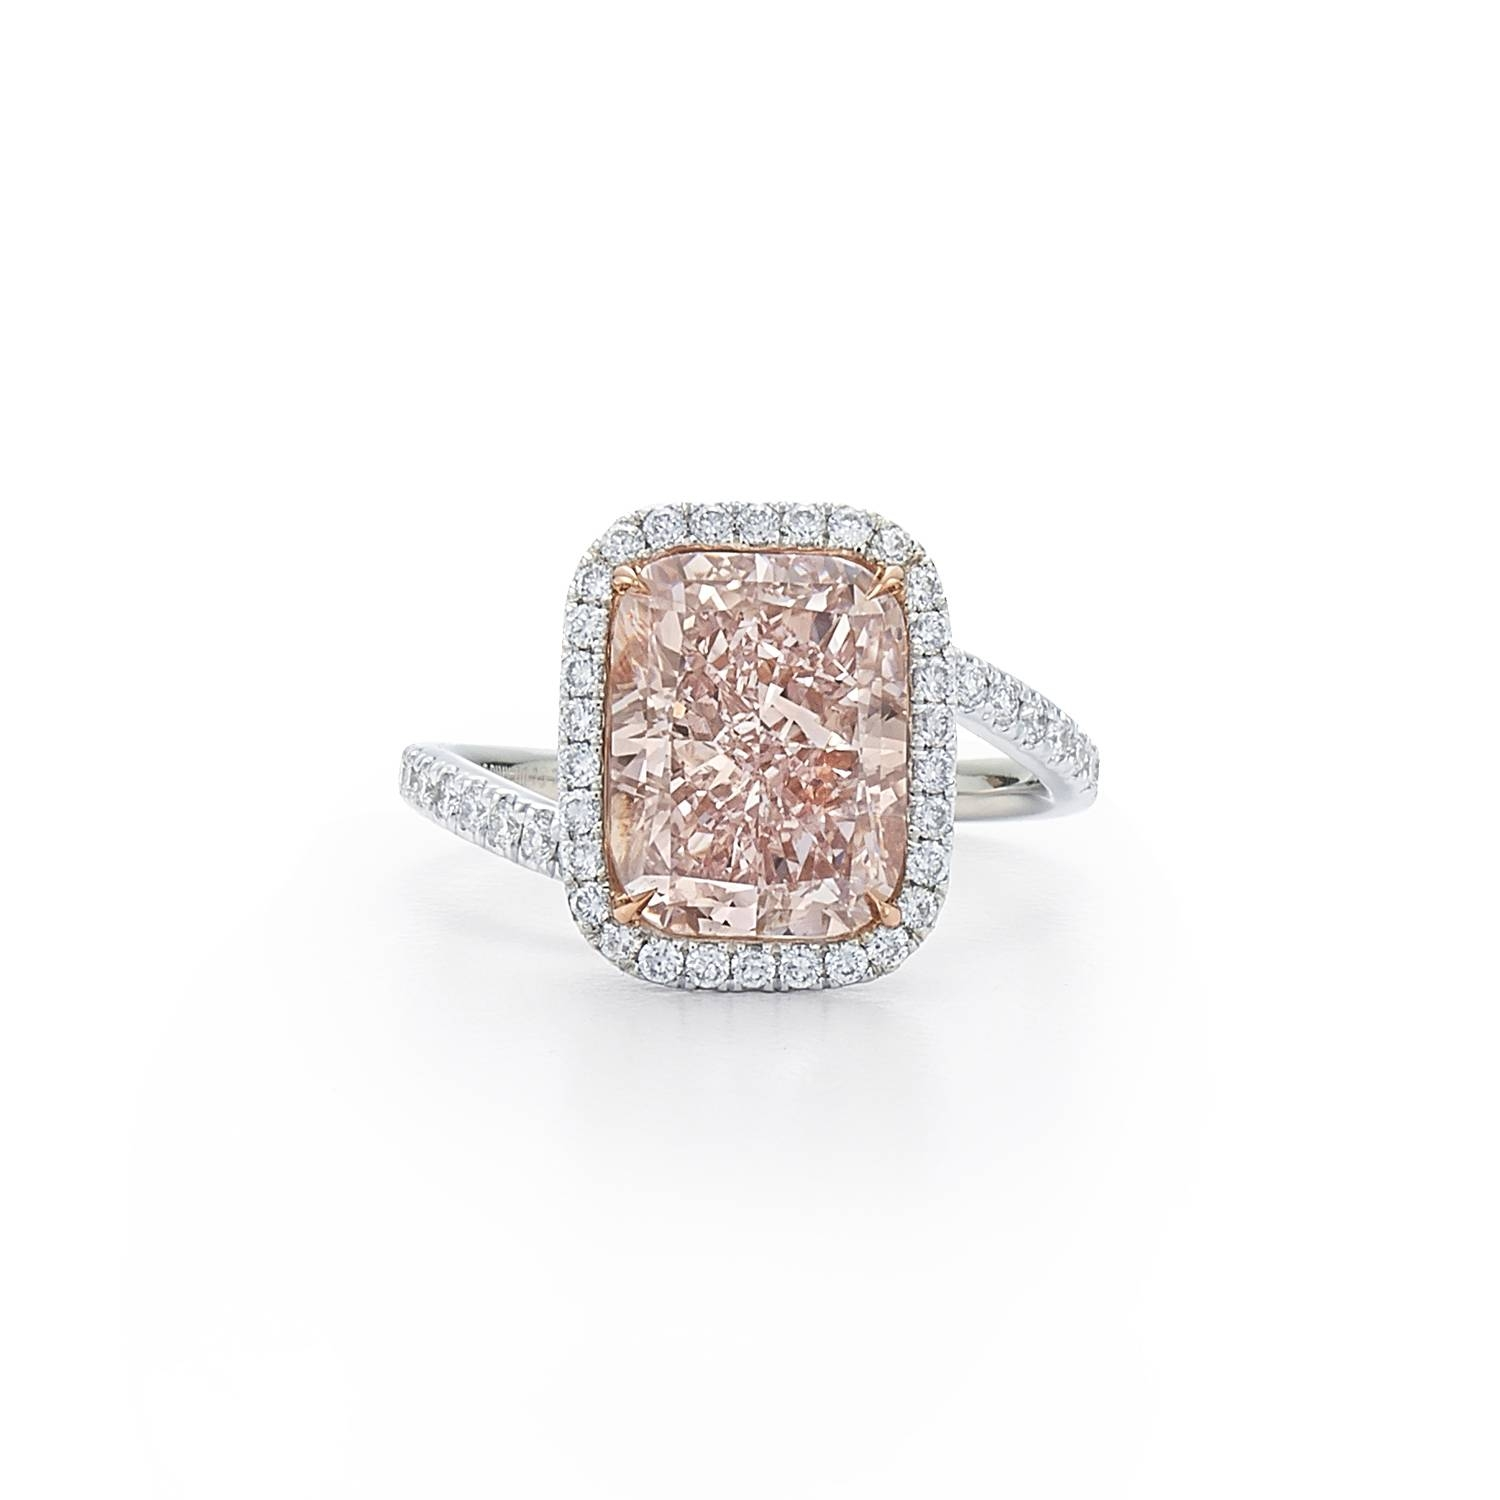 Radiant Fancy Pink Diamond Ring With Diamond Halo And Band (View 14 of 15)